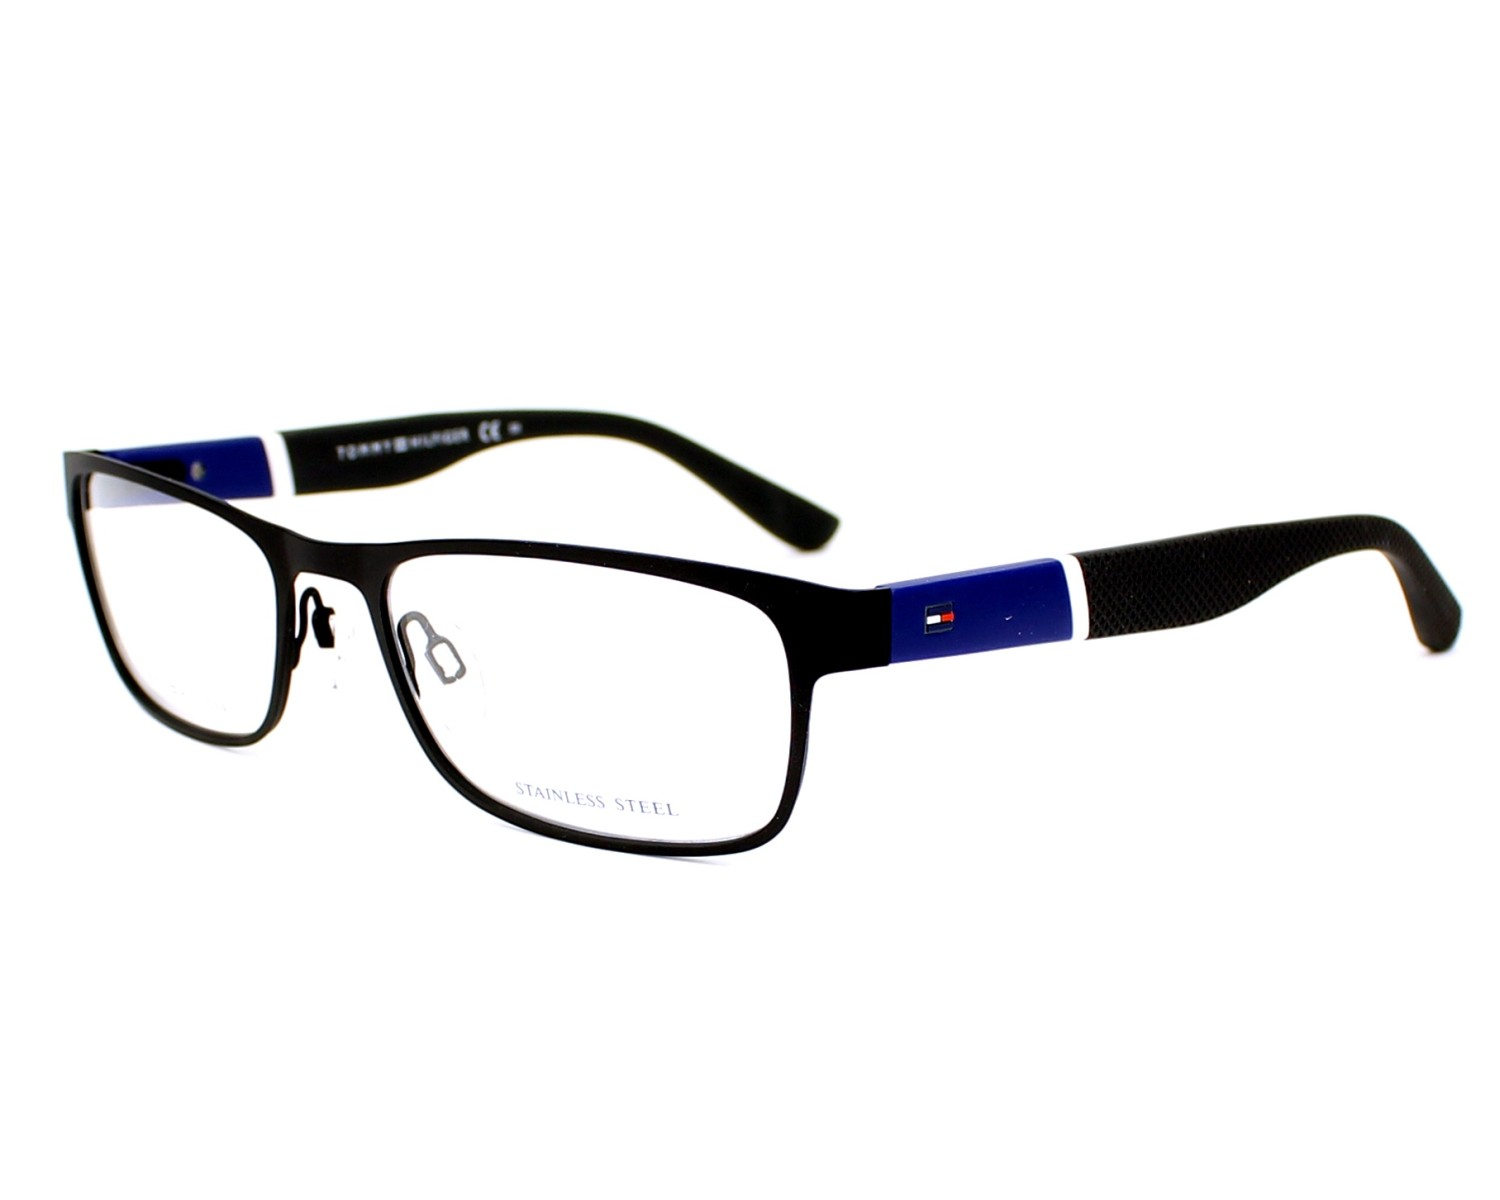 Tommy Hilfiger Glasses Frames Blue : Order your Tommy Hilfiger eyeglasses TH 1284 FO3 53 today